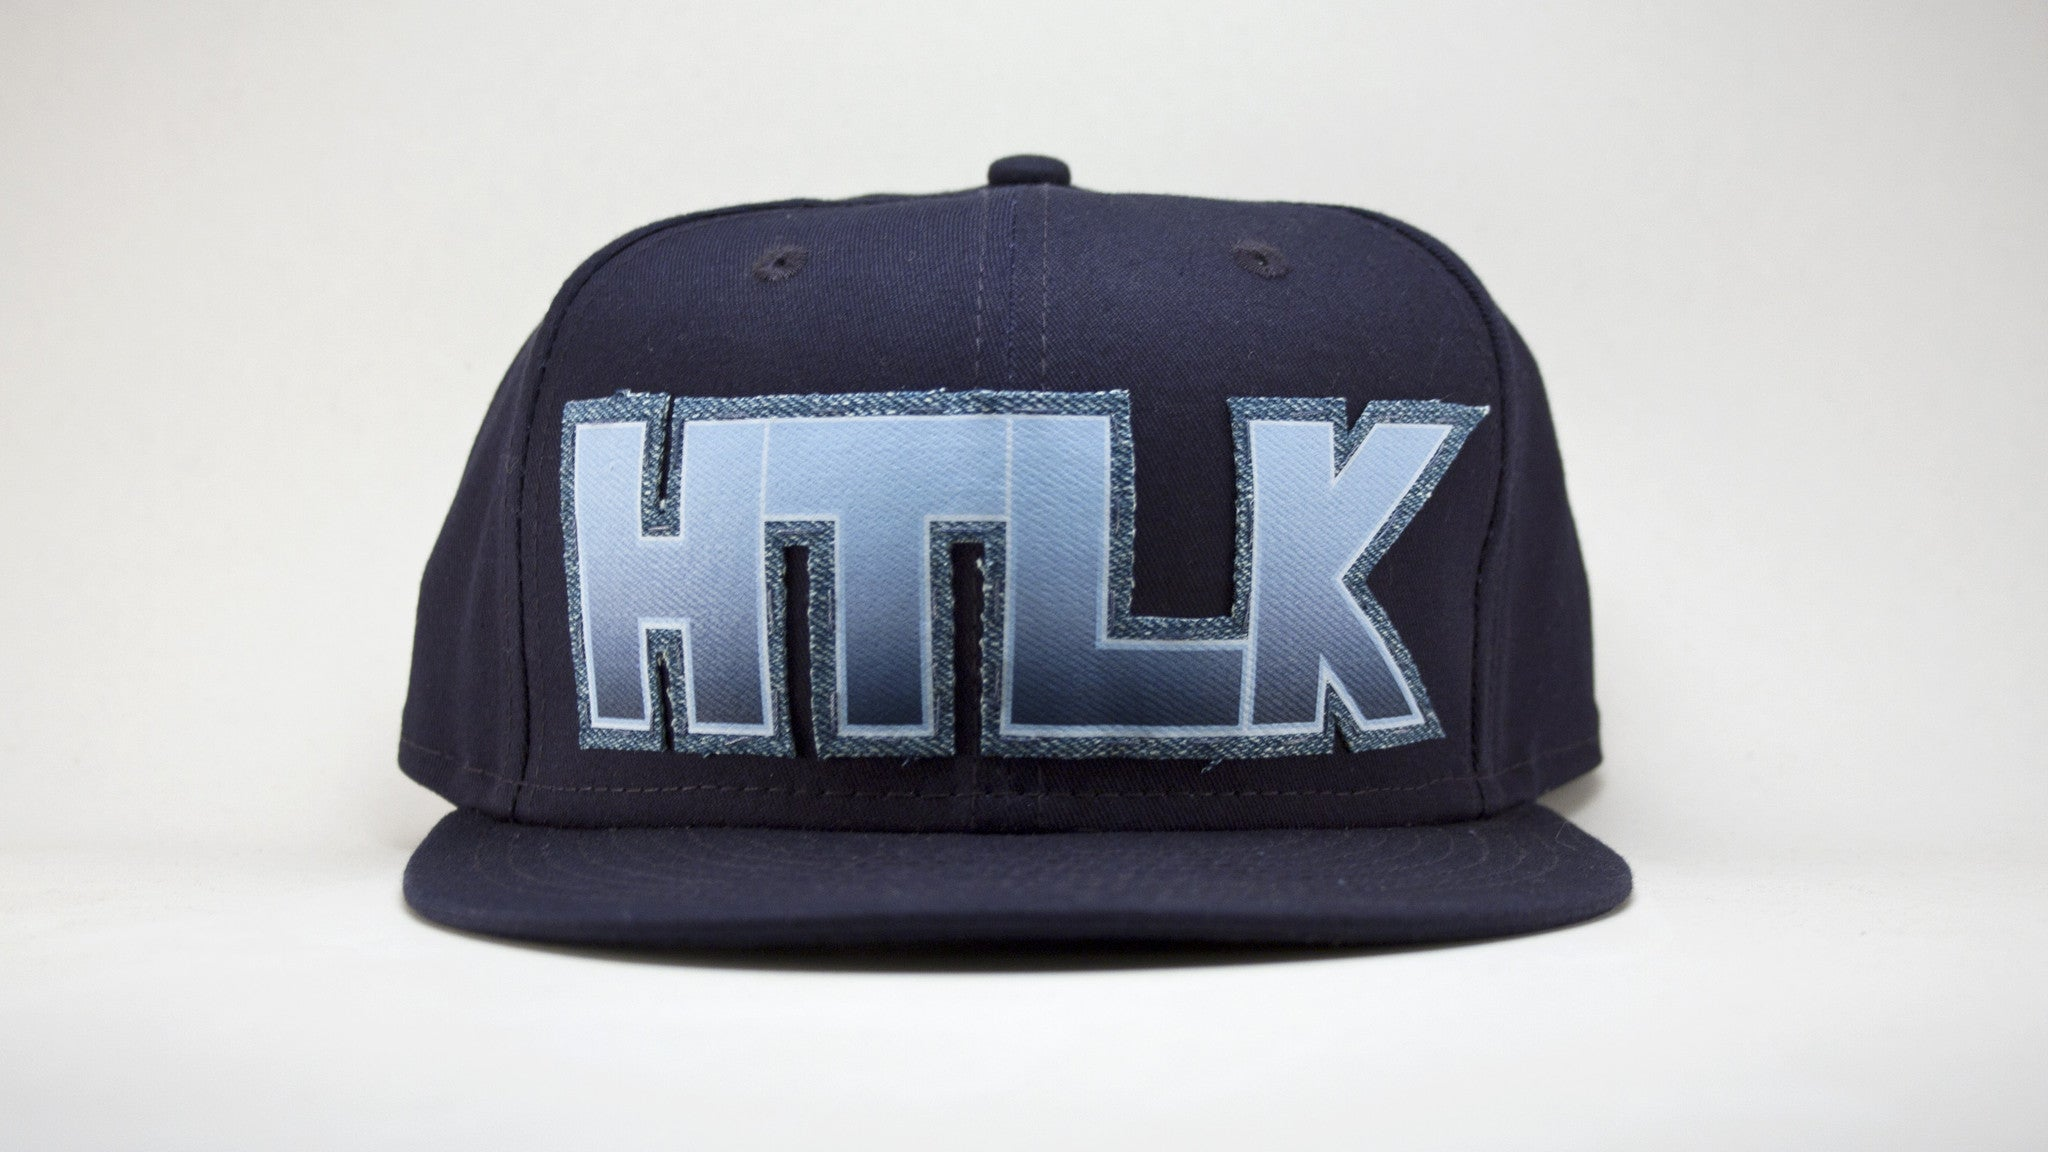 HTLK: Be Bold - Hat